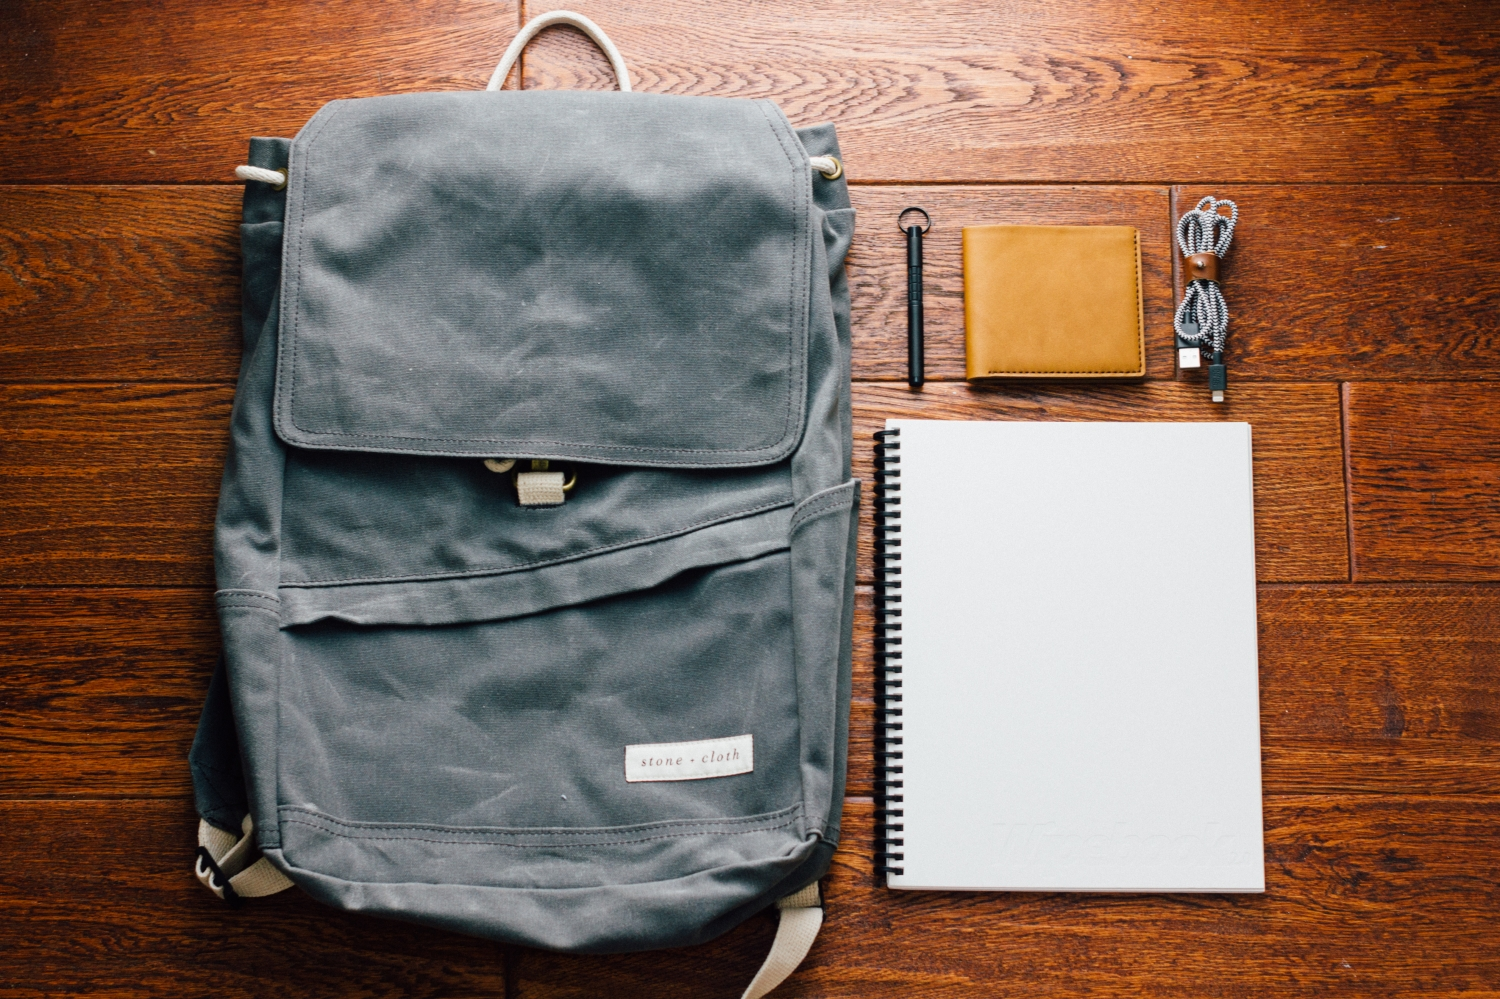 Win a Waxed Canvas Backpack, Horween Leather Wallet, & more!